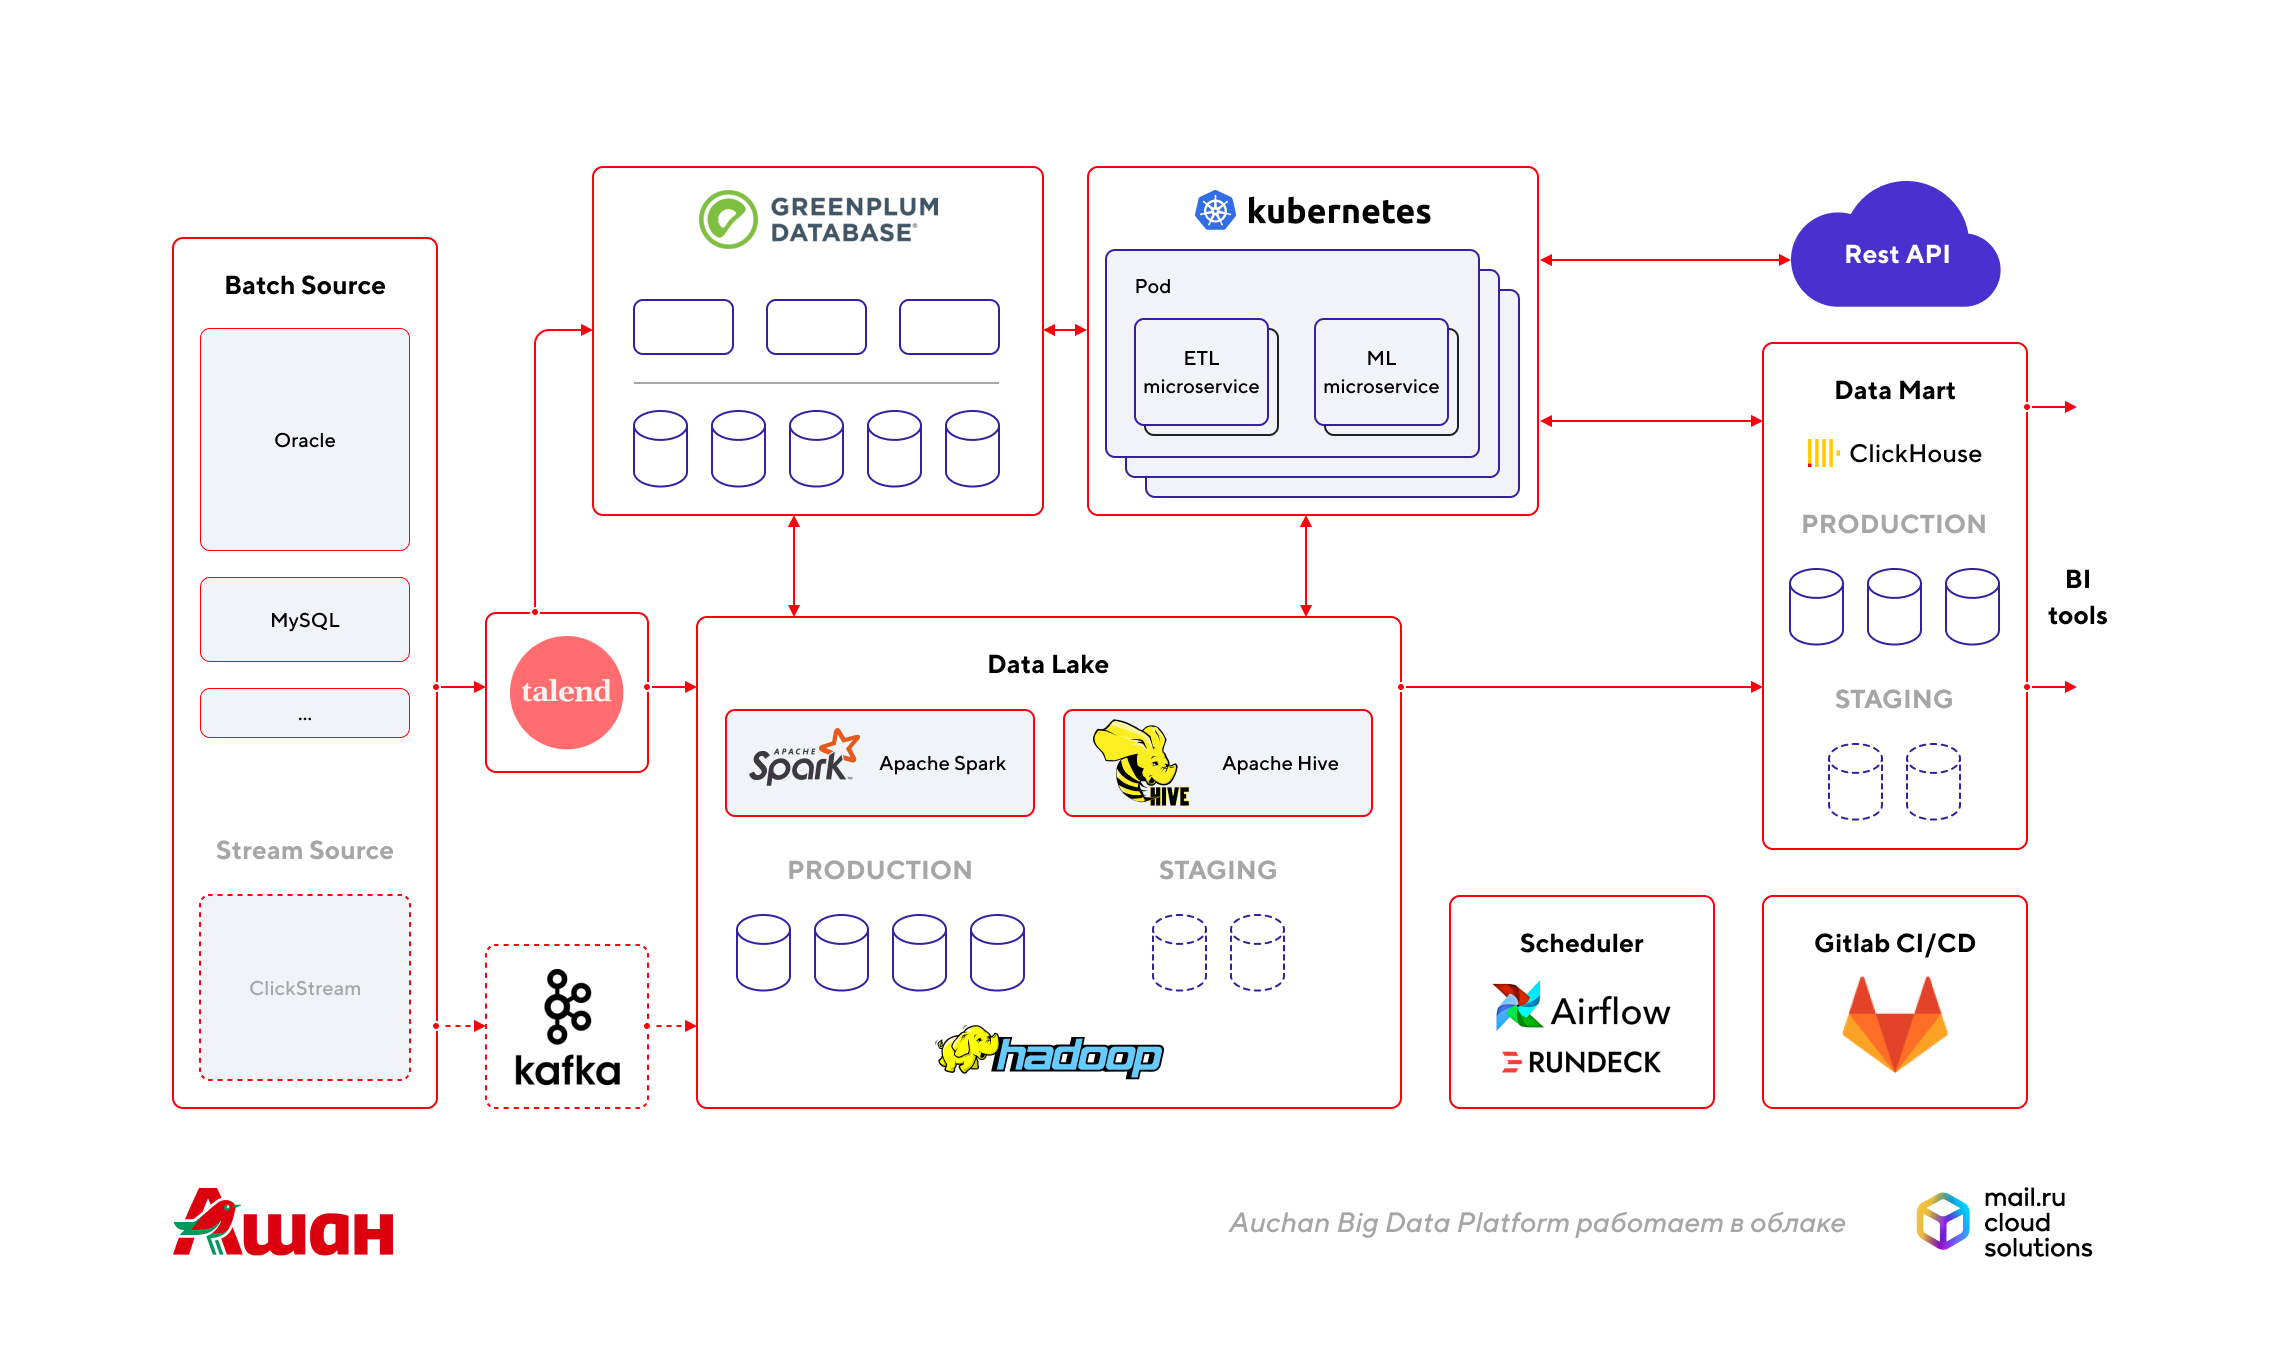 Auchan Big Data Platform